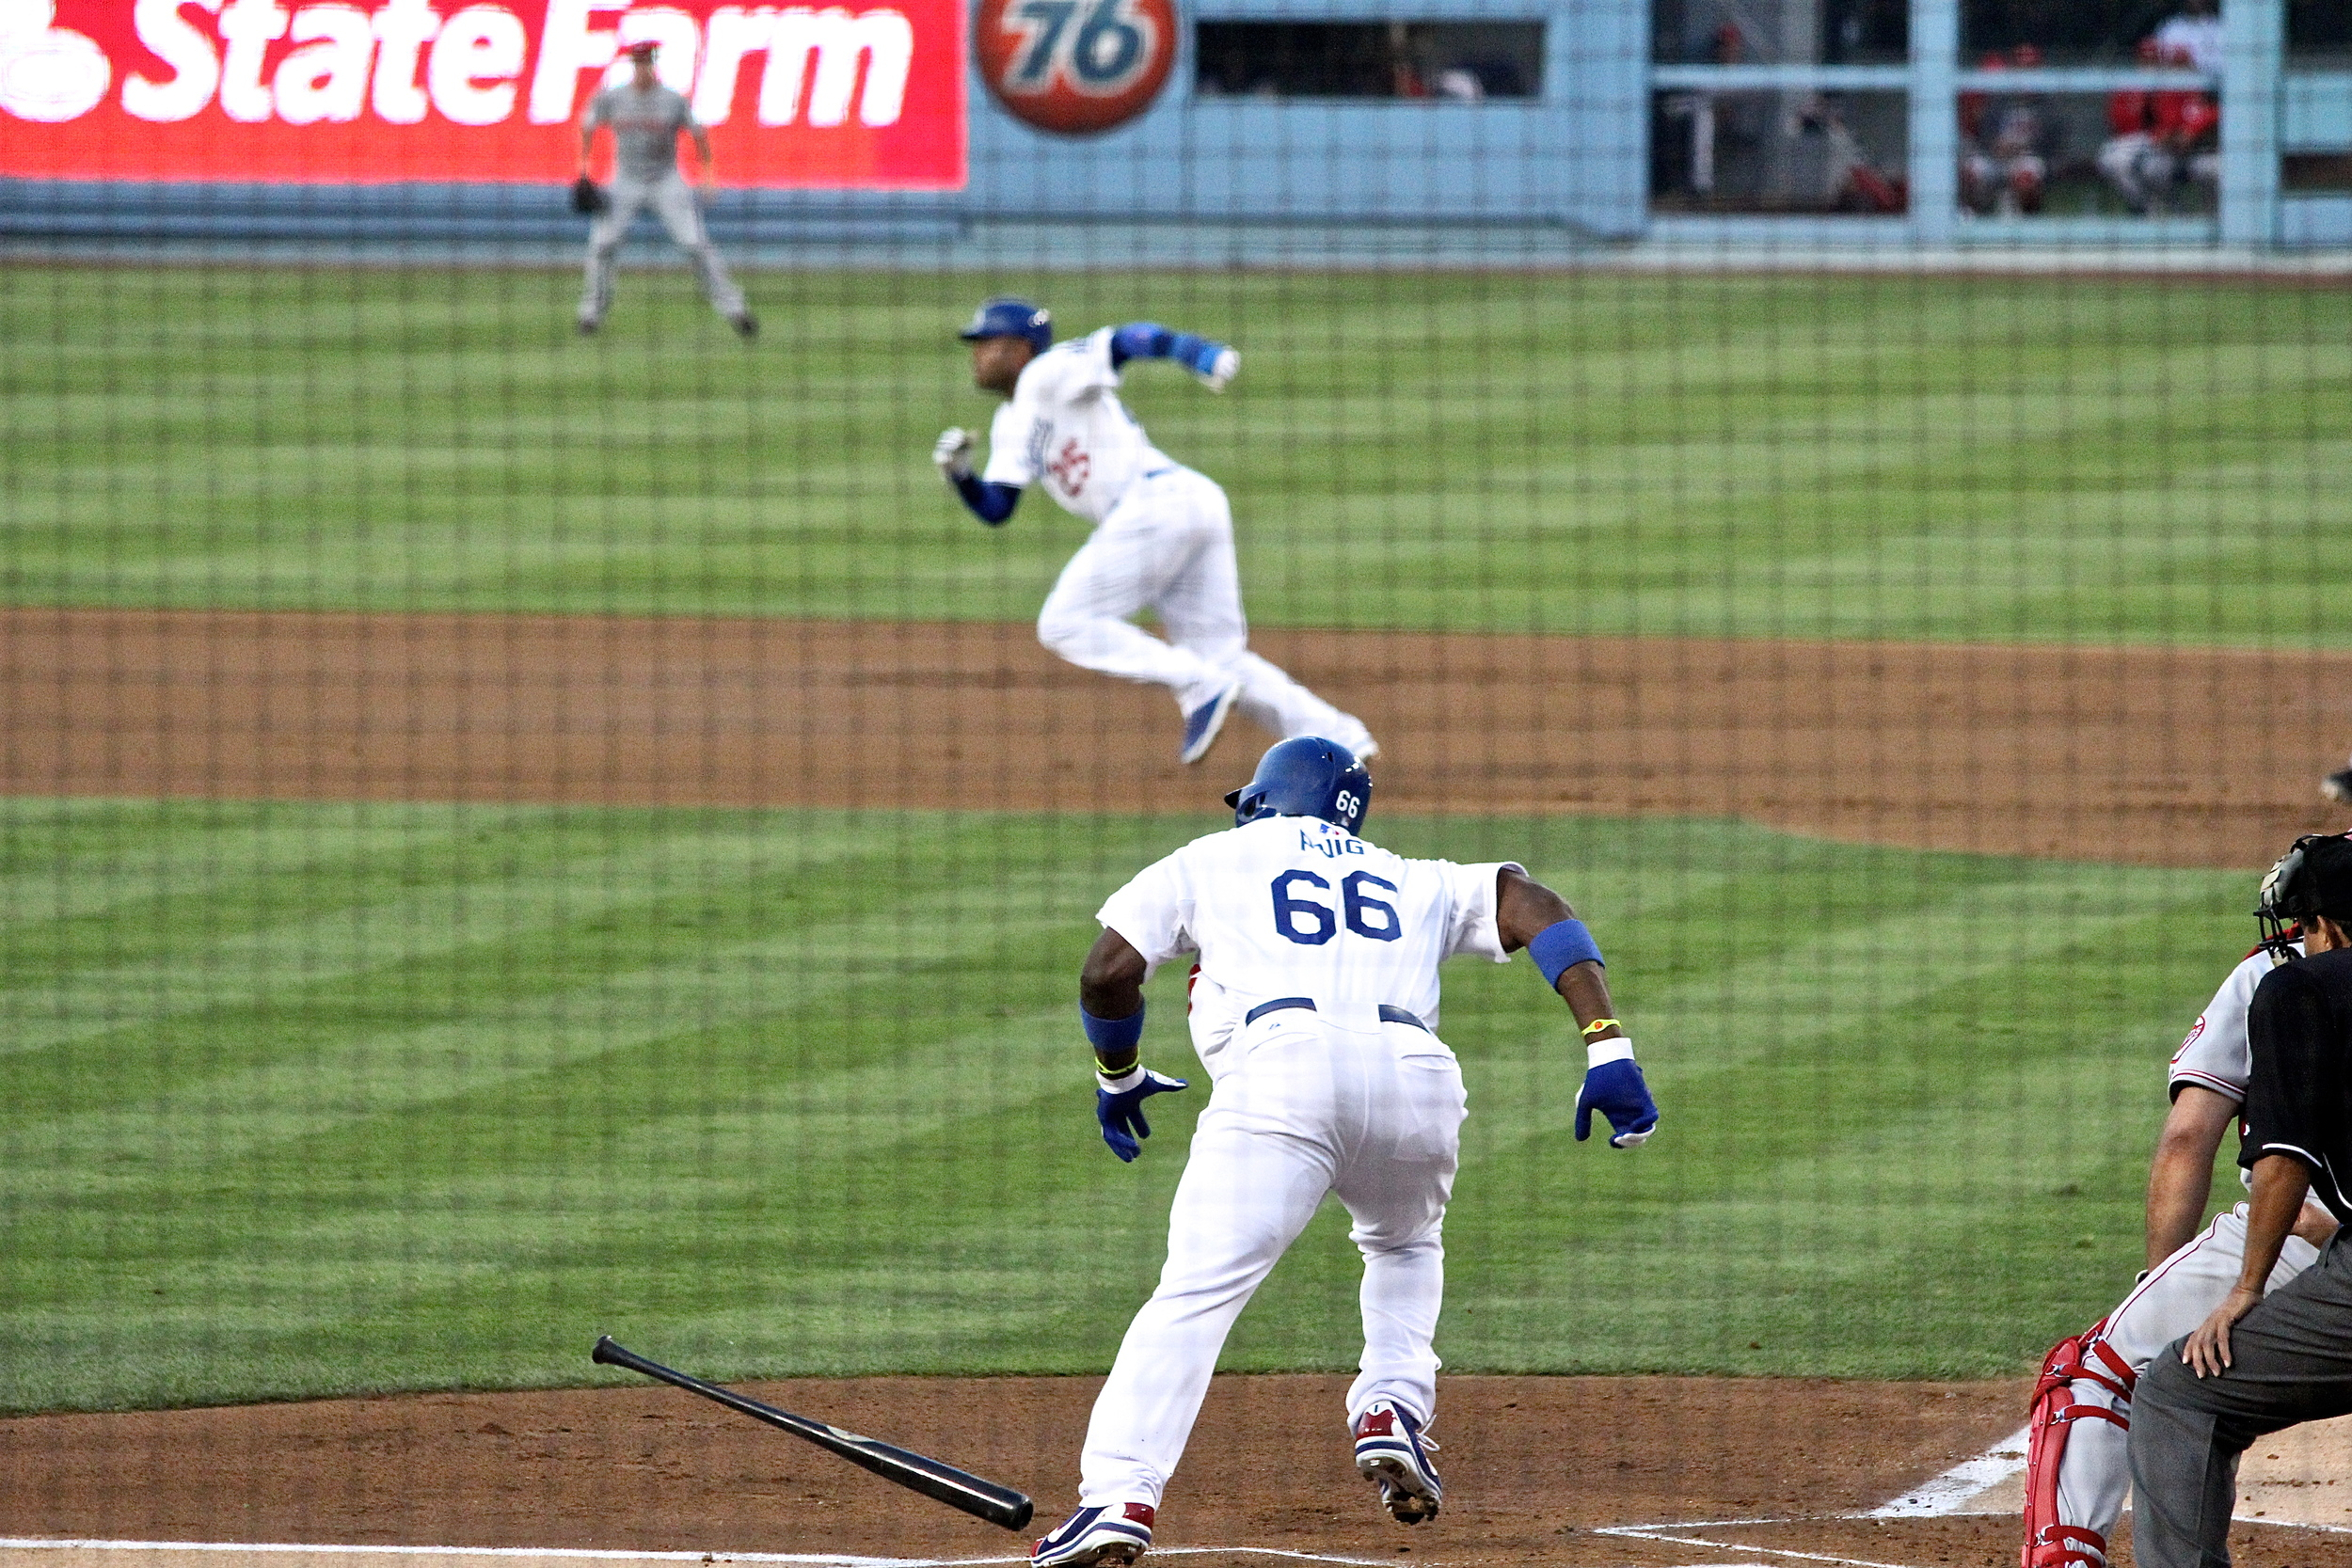 Puig hustles out of the box